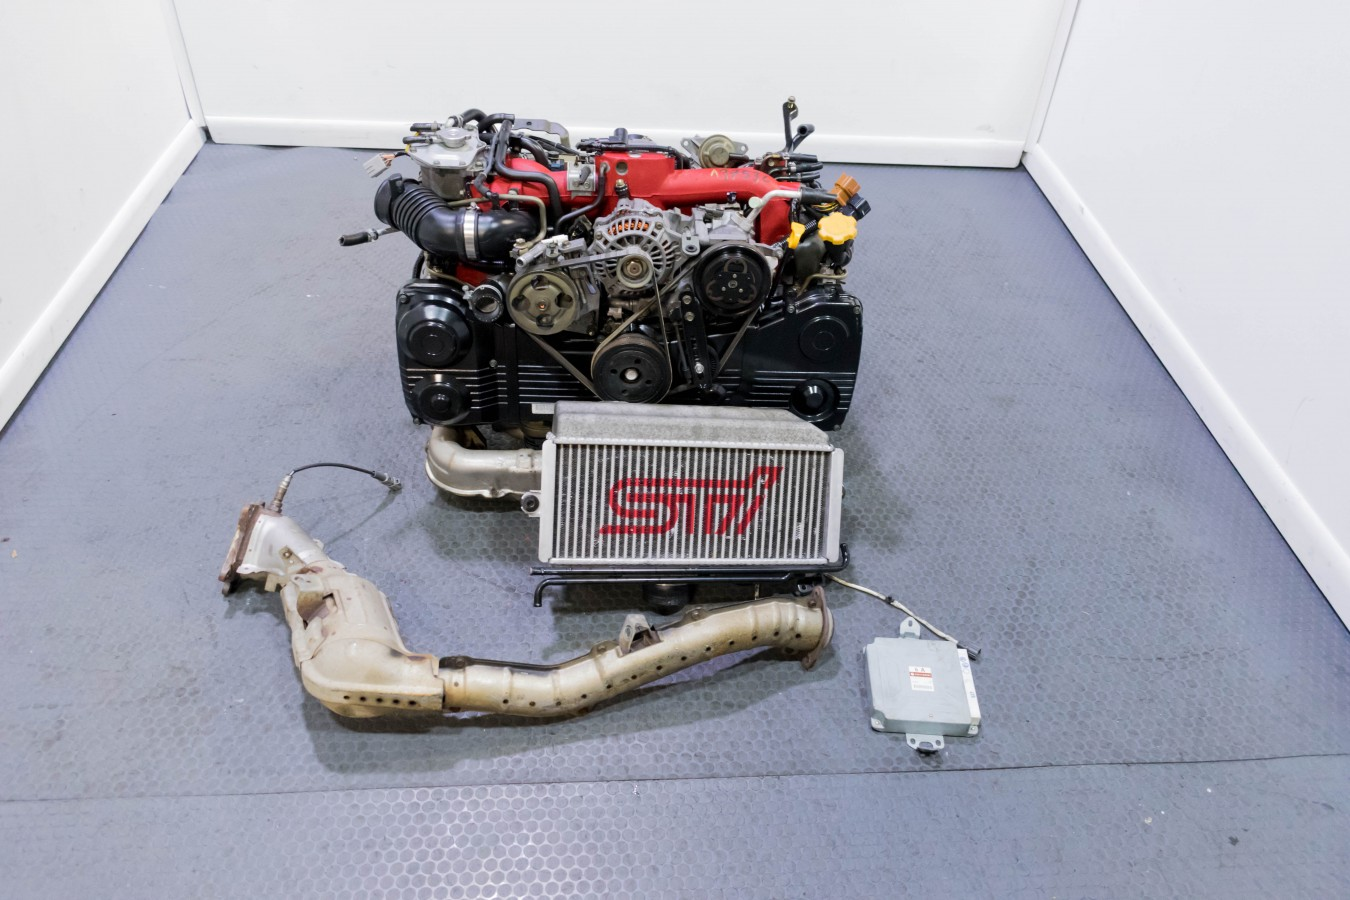 Clean and Compresion tested JDM Ver 8 Subaru EJ207 STI Motor Swap for  2002-2005 Impreza WRX with TMIC, Downpipe and ECU Package for sale